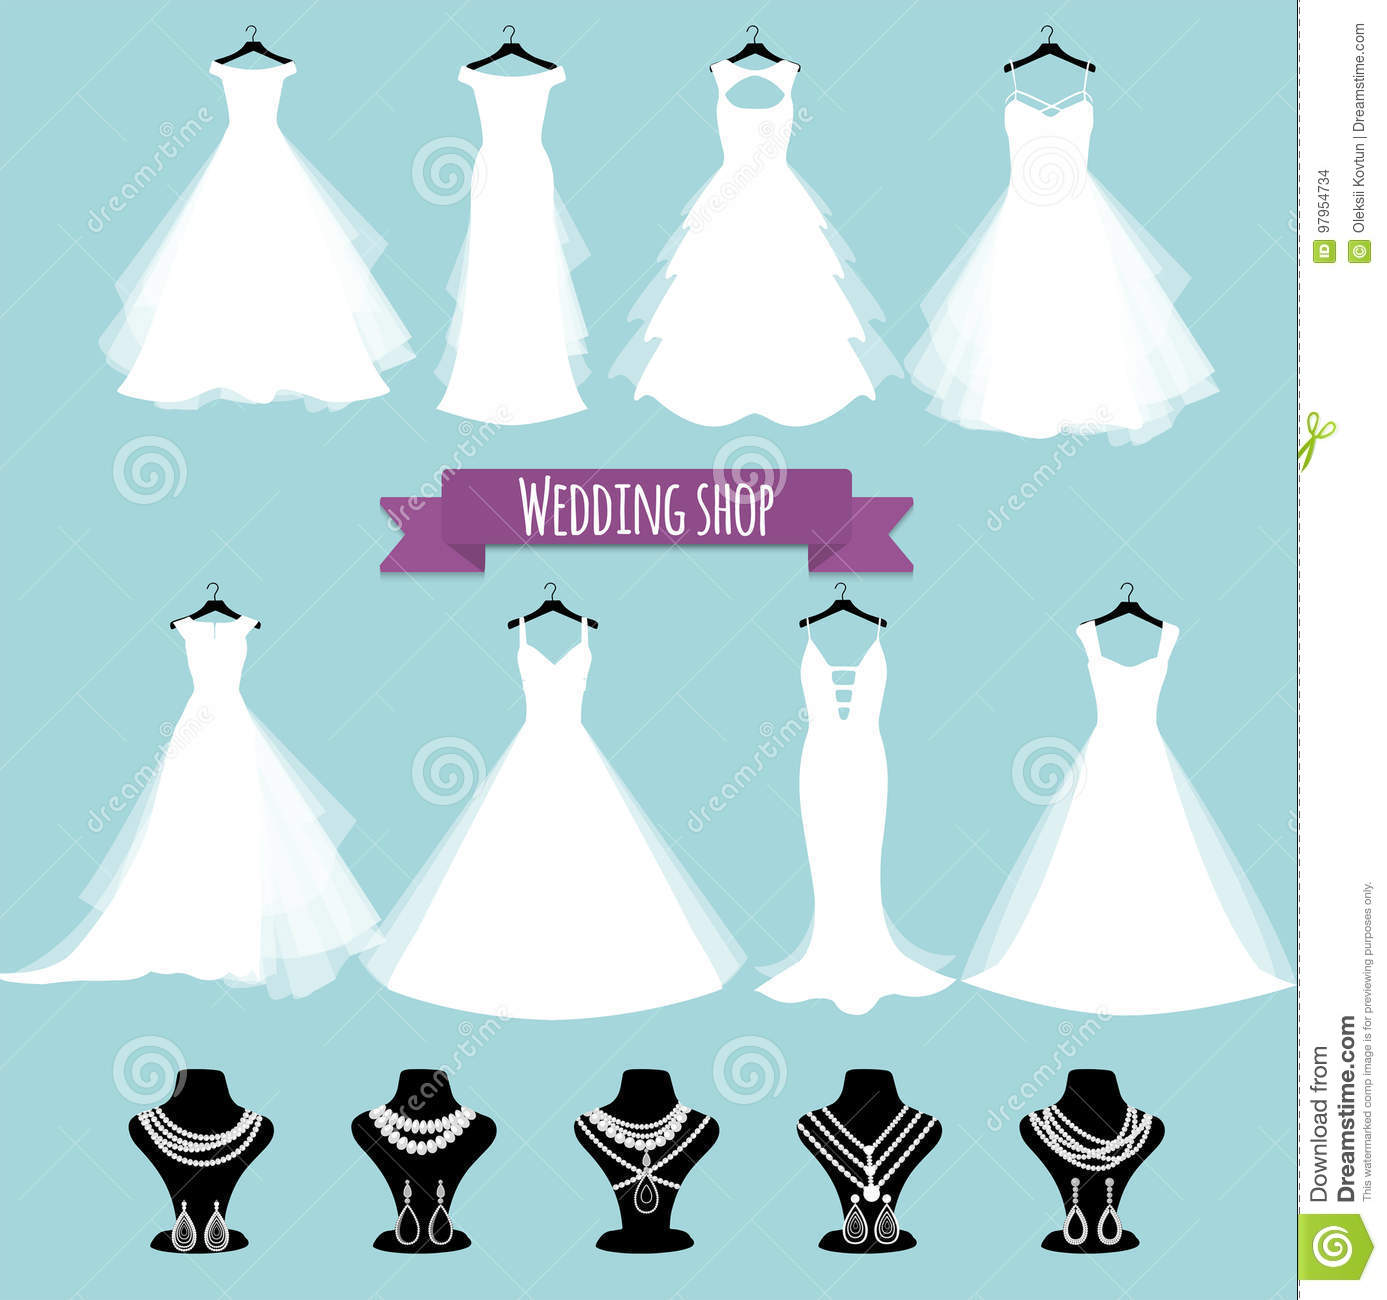 Wedding Shop. Vector Illustration, Eps 10. Wedding Dress And Jewelry ...